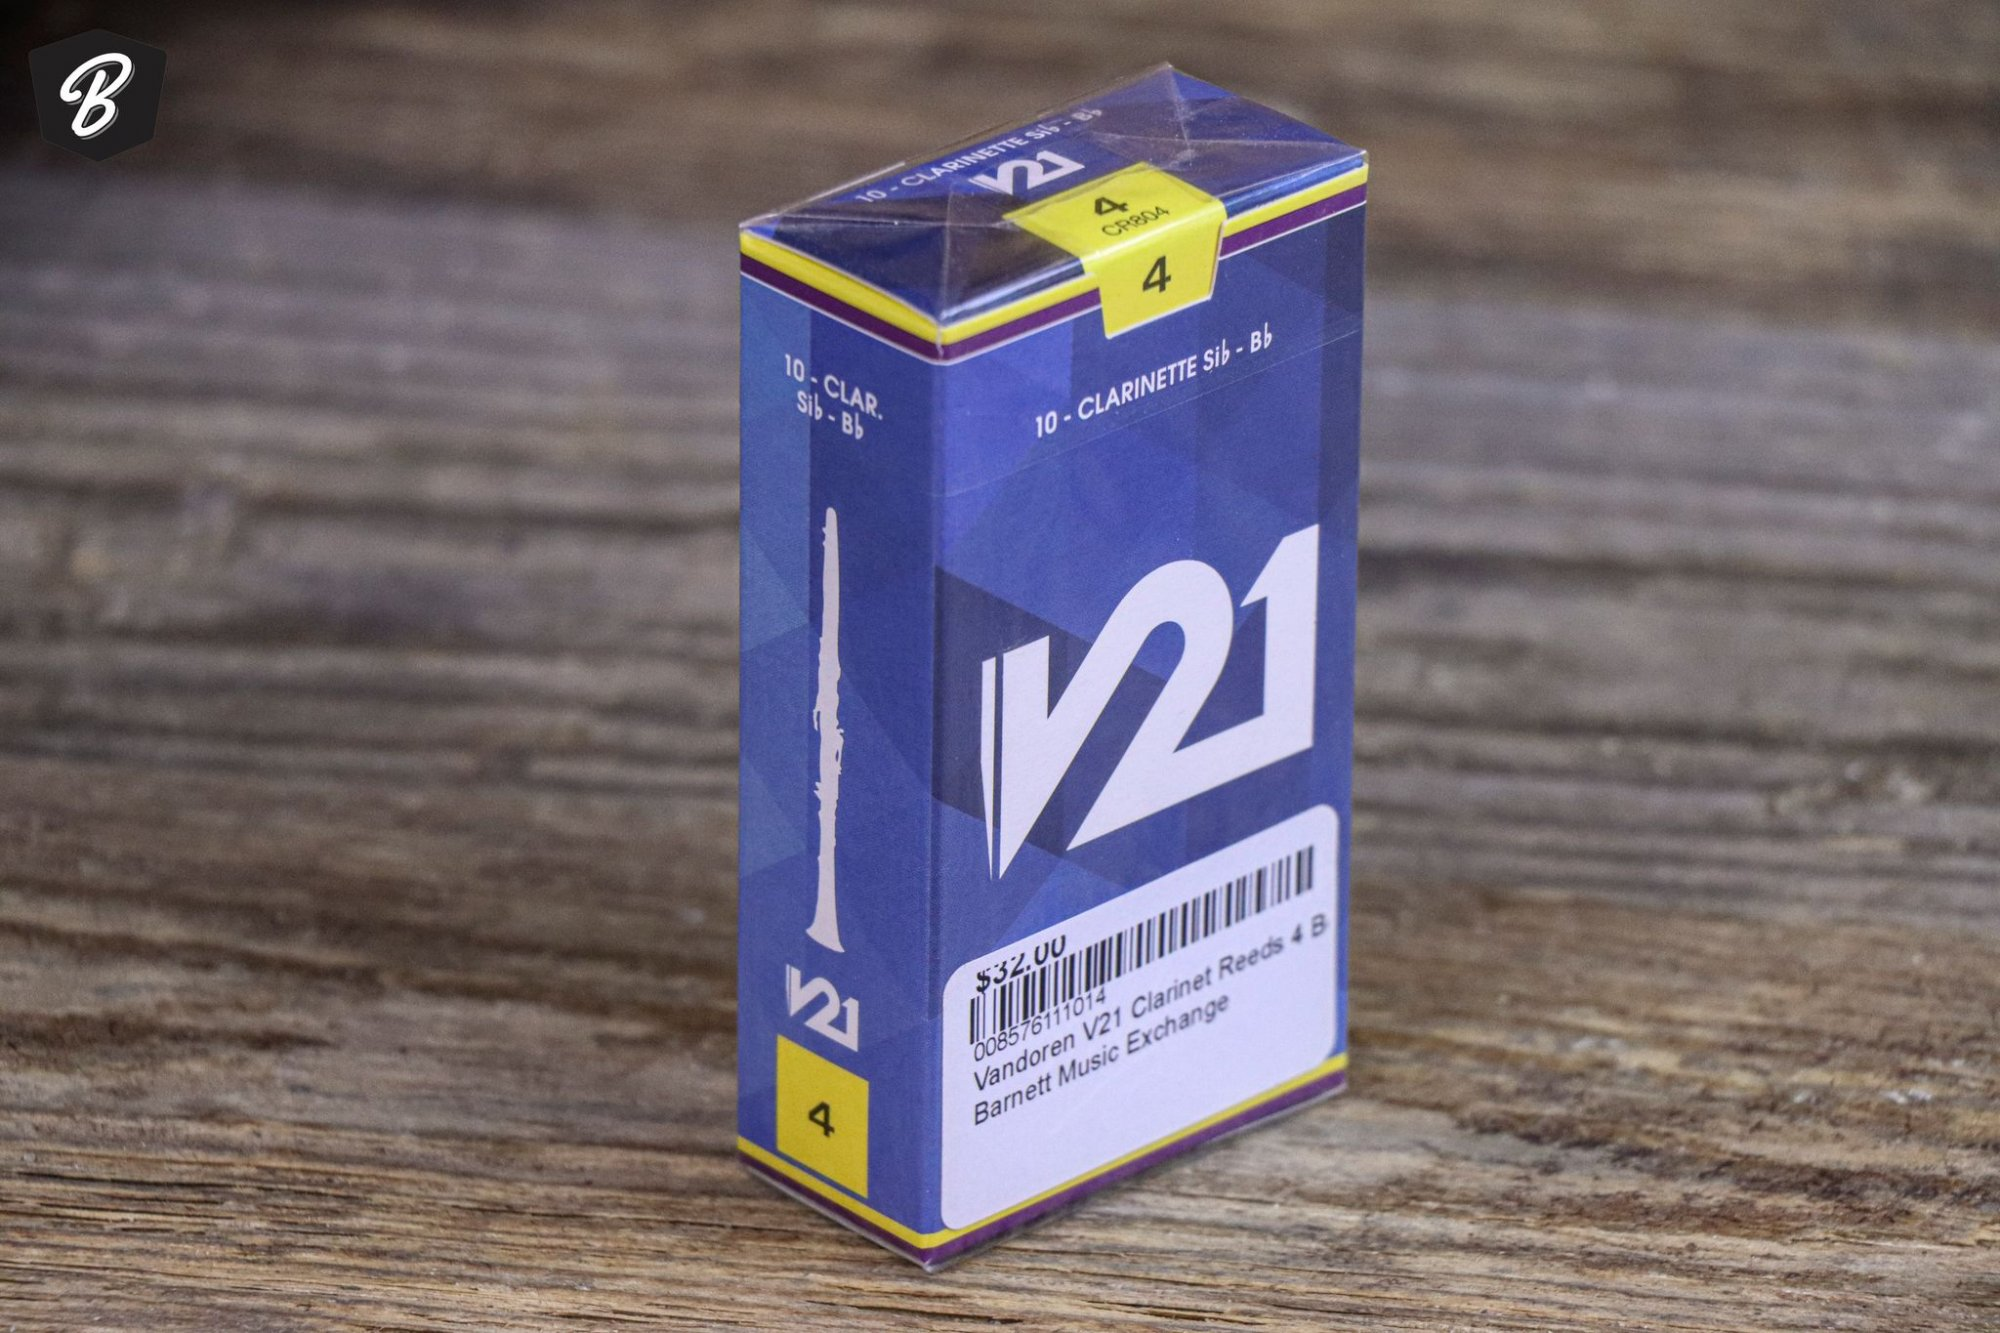 Vandoren V21 Clarinet Reeds 4 Box of 10